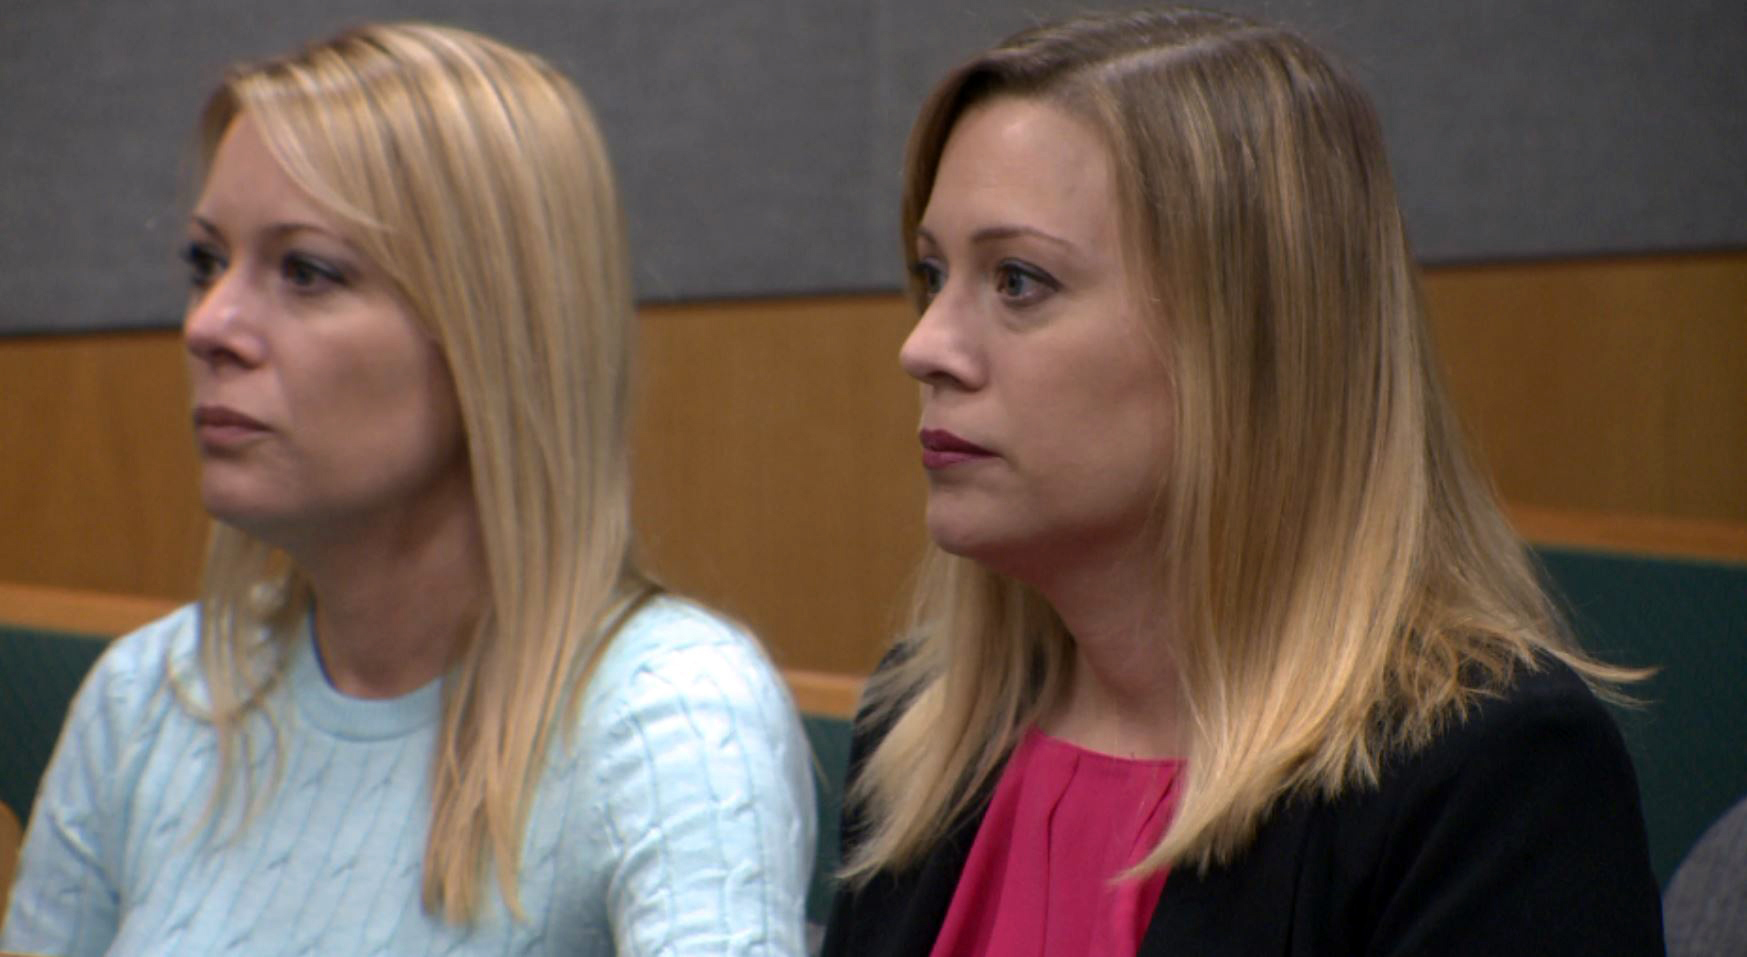 Melissa Marshall, right, gets support from her twin sister in court on Dec. 20, 2016. (KXAN Photo/Tom Rapp)